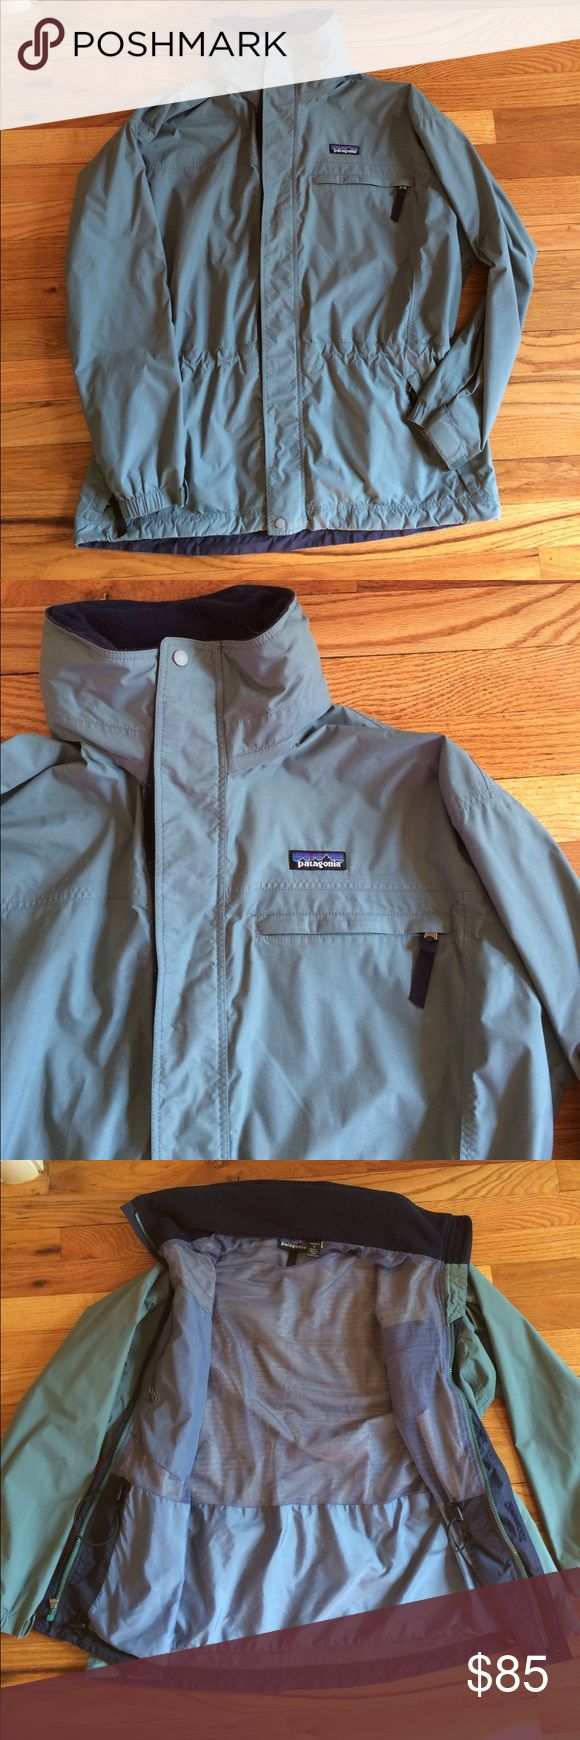 Lowest price🌸Rare Patagonia Parka This amazing women's Patagonia parka is multi functional and the perfect spring rain jacket for all your excursions! Features a stow away attached hood (in the neckline), water proof, hip and waist adjust for the perfect fit! This jacket is nice and long so easy to wear with leggings or work out gear! Worn sparingly with no flaws or defects! A rare find! Color is a dusty teal.size medium and true to size 8/10 Patagonia Jackets & Coats